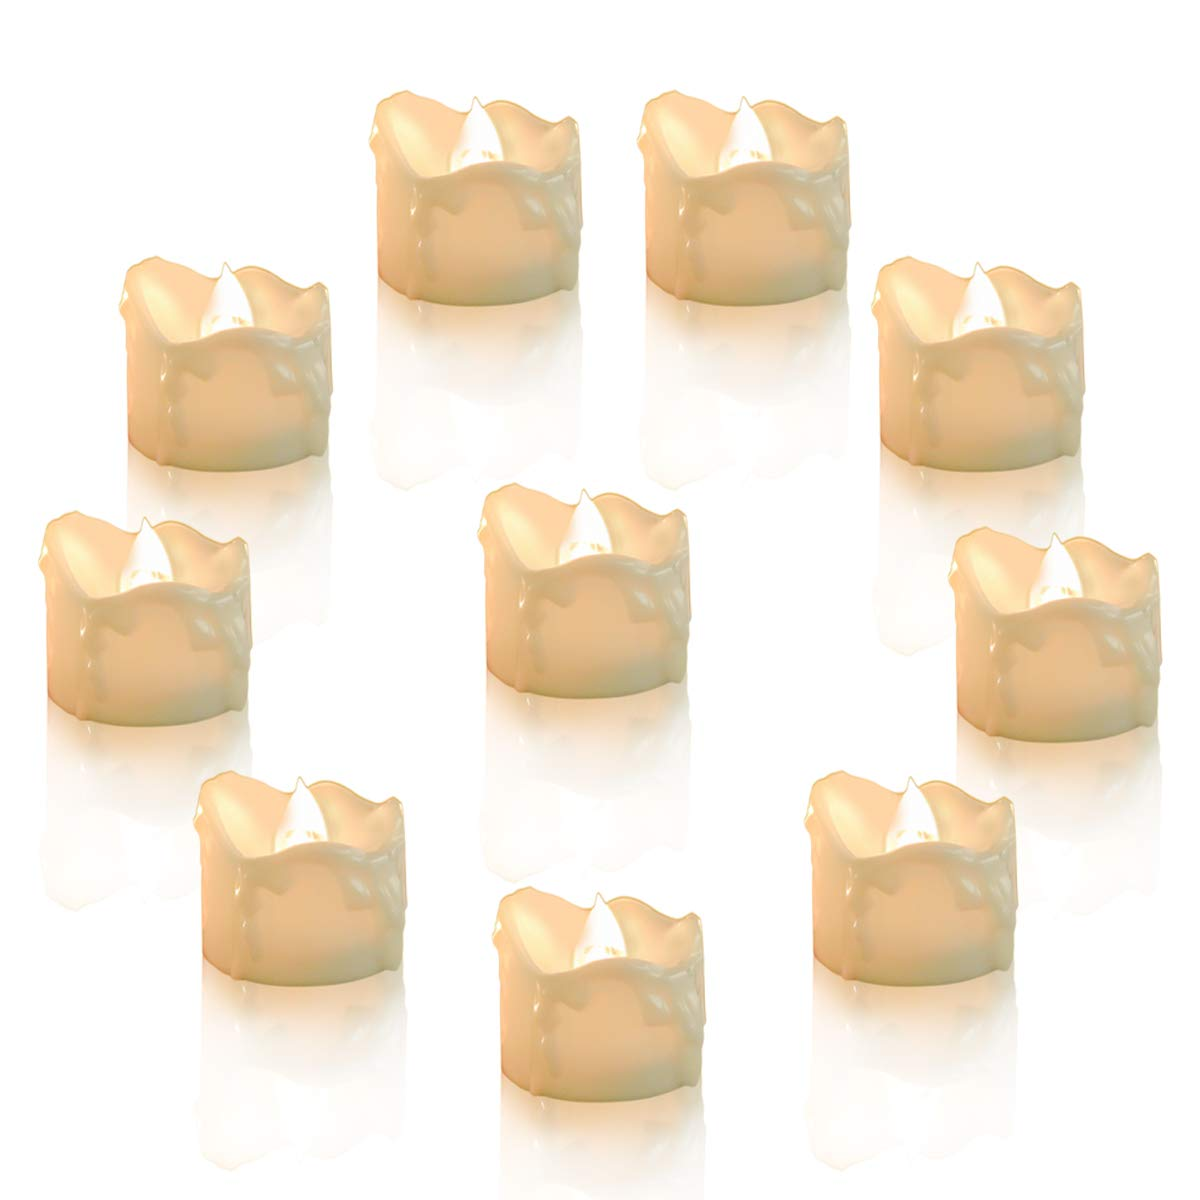 Youngerbaby 24pcs Warm White Flickering Timing Function LED Tea Light Candles with Decor Rose Petals Flameless Battery Operated Tealights with Timer 6 Hrs on 18 Hrs Off for Wedding Christmas Party